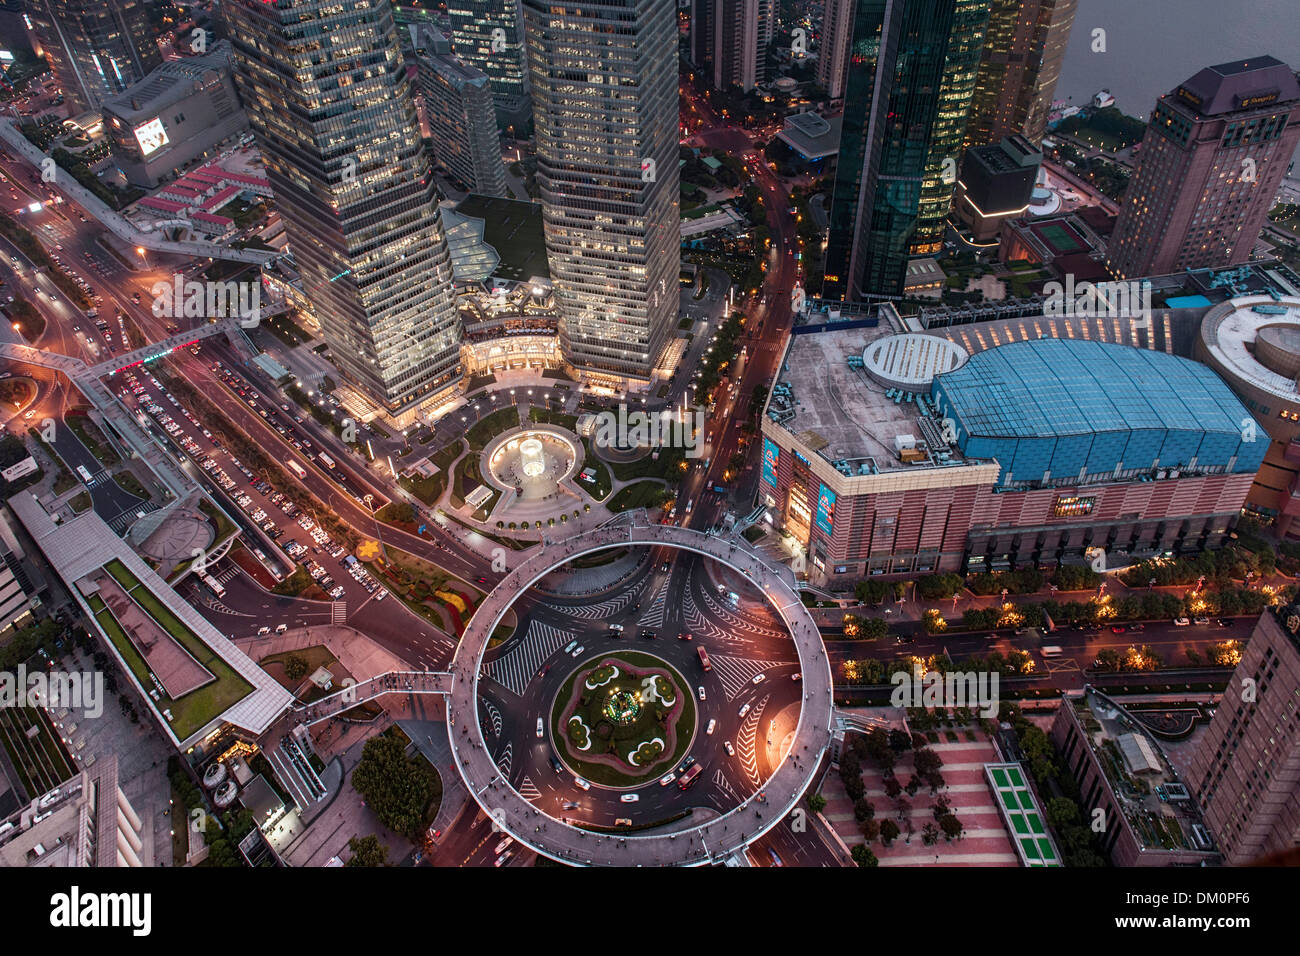 Cityscape, view of IFC, SWFC, Shanghai World Financial Center, Jin Mao Tower at night, Lujiazui, Pudong, Shanghai, China - Stock Image